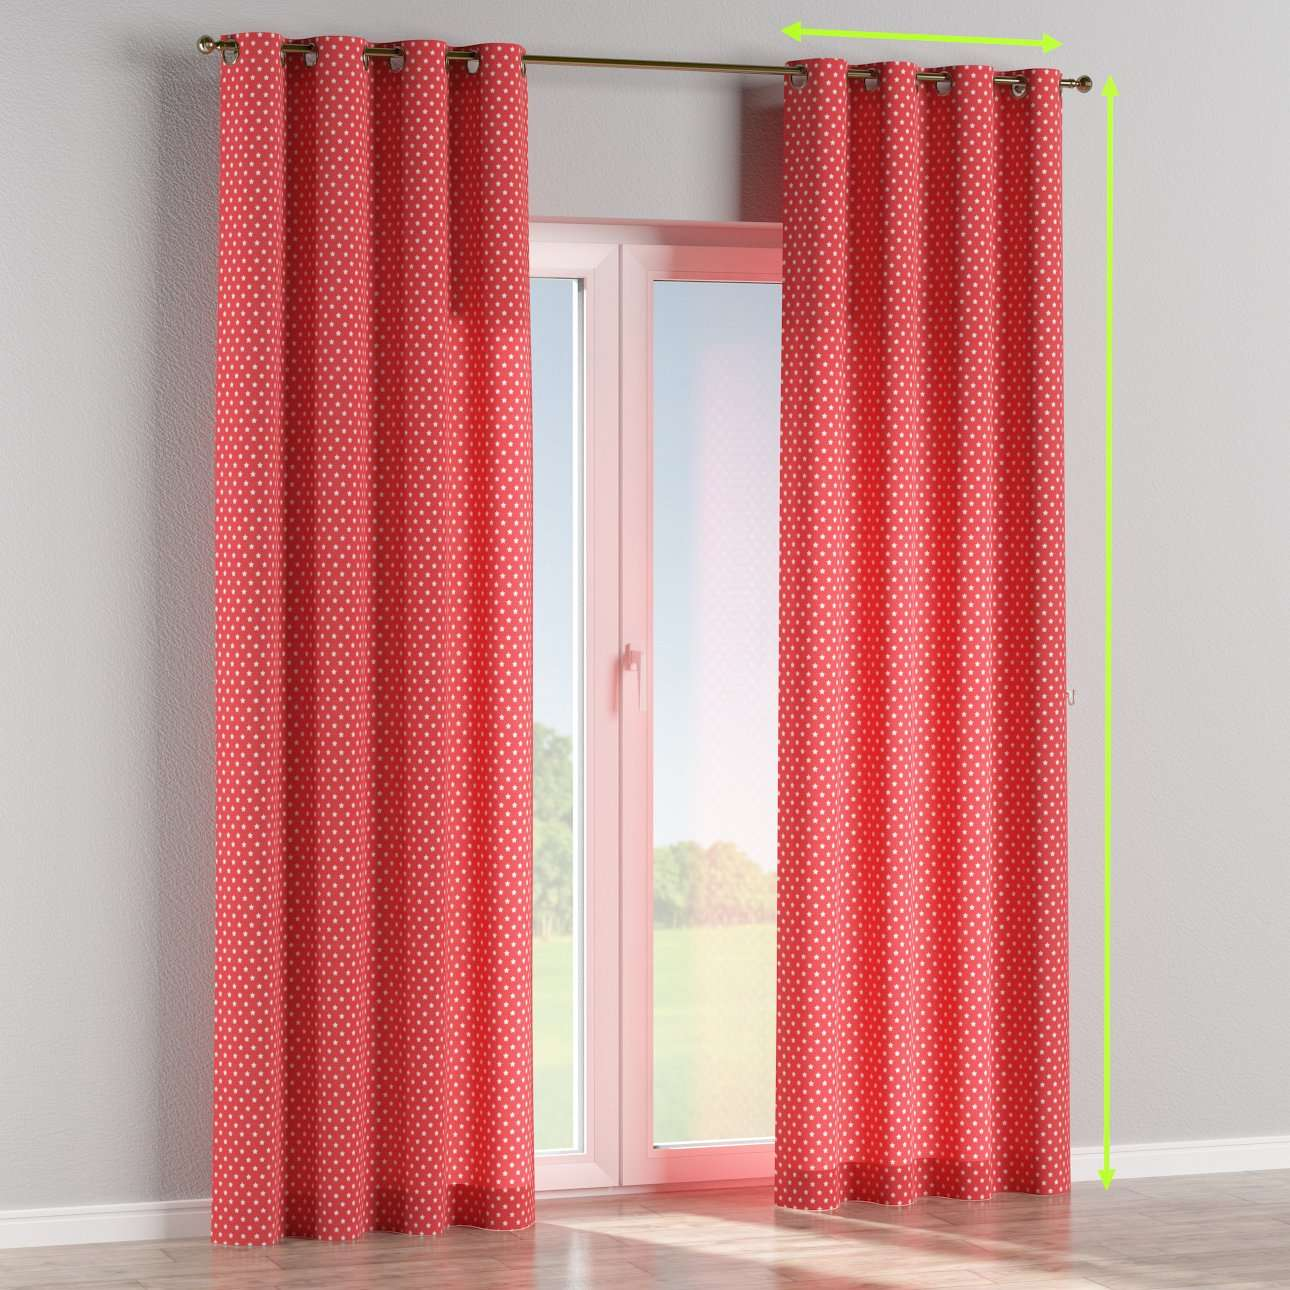 Eyelet curtain in collection Little World, fabric: 137-69